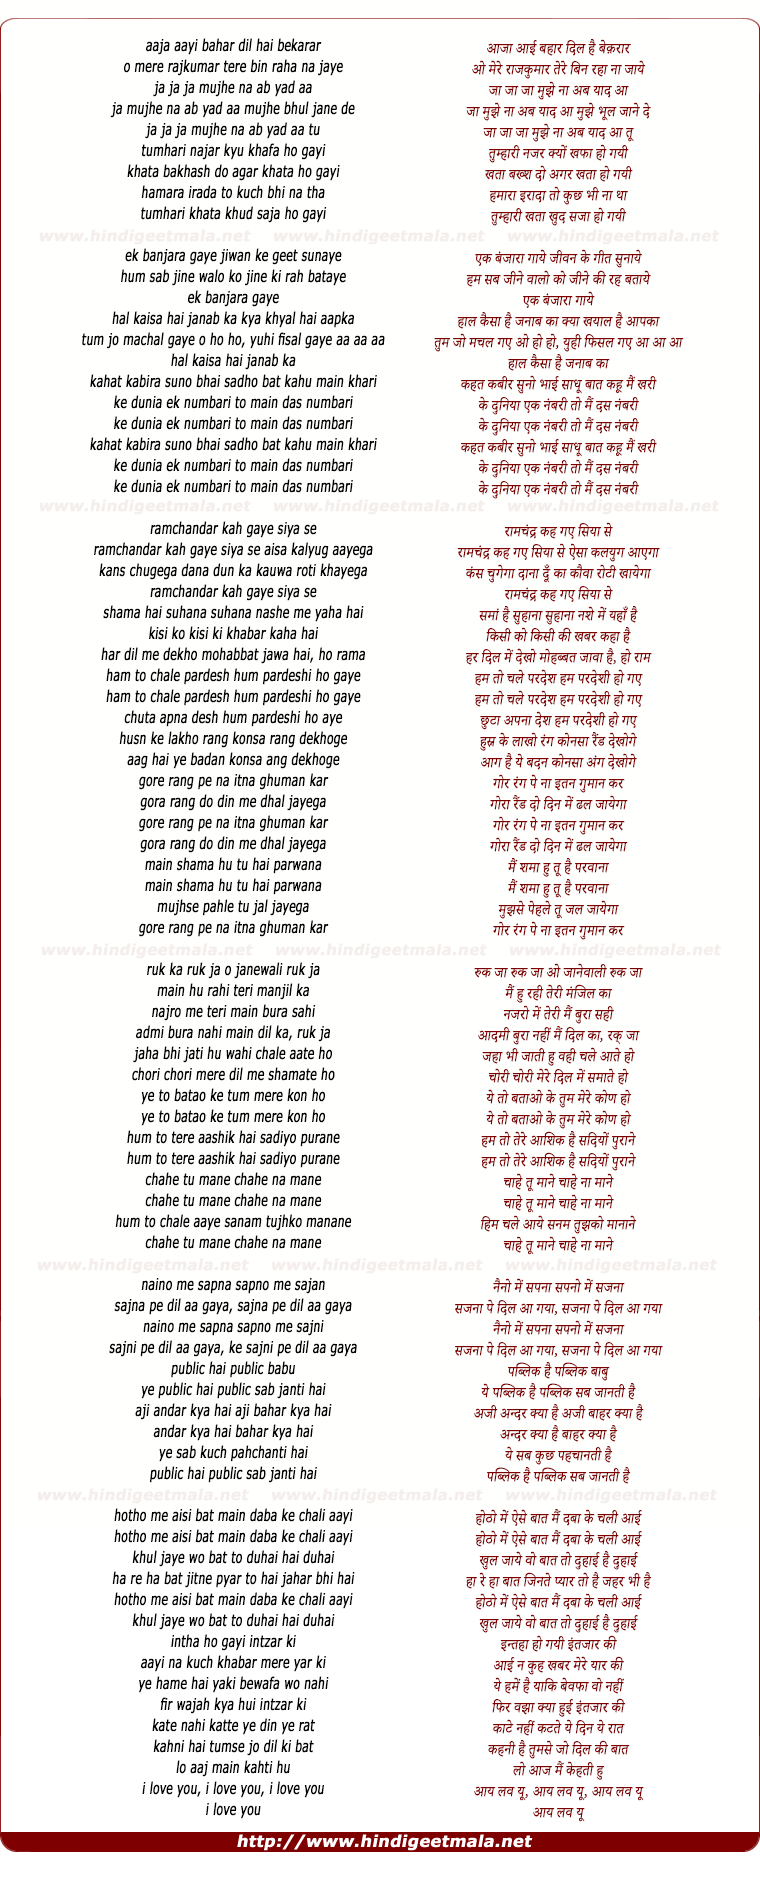 lyrics of song Antakshari